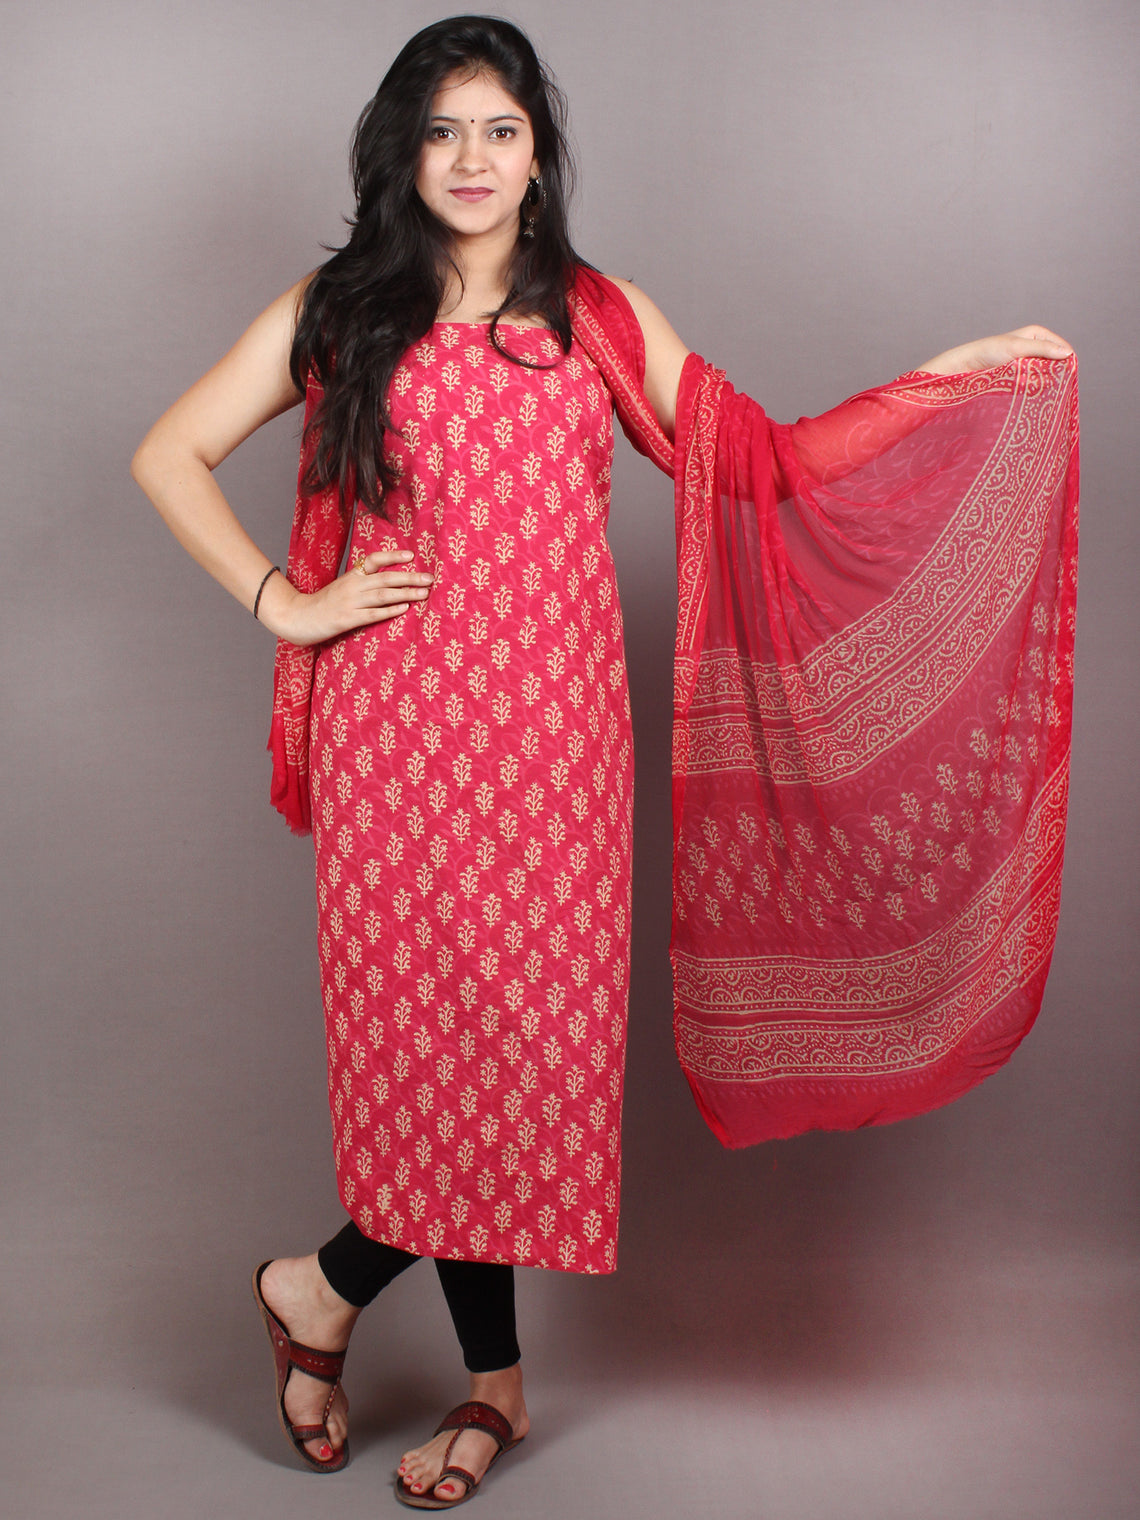 Red White Hand Block Printed Cotton Suit-Salwar Fabric With Chiffon Dupatta - S1628045